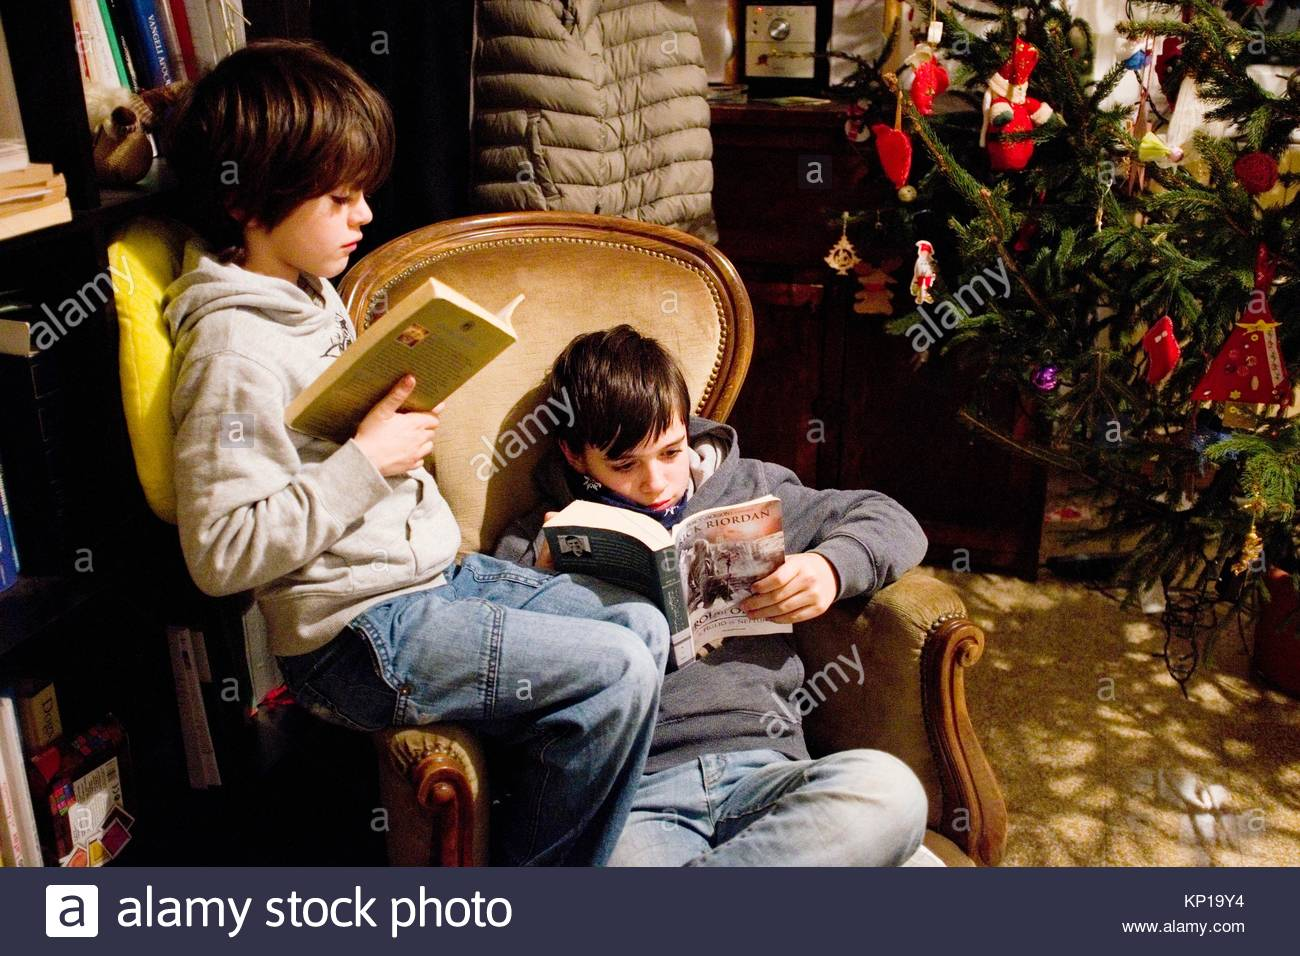 children read a book in their living room - Stock Image